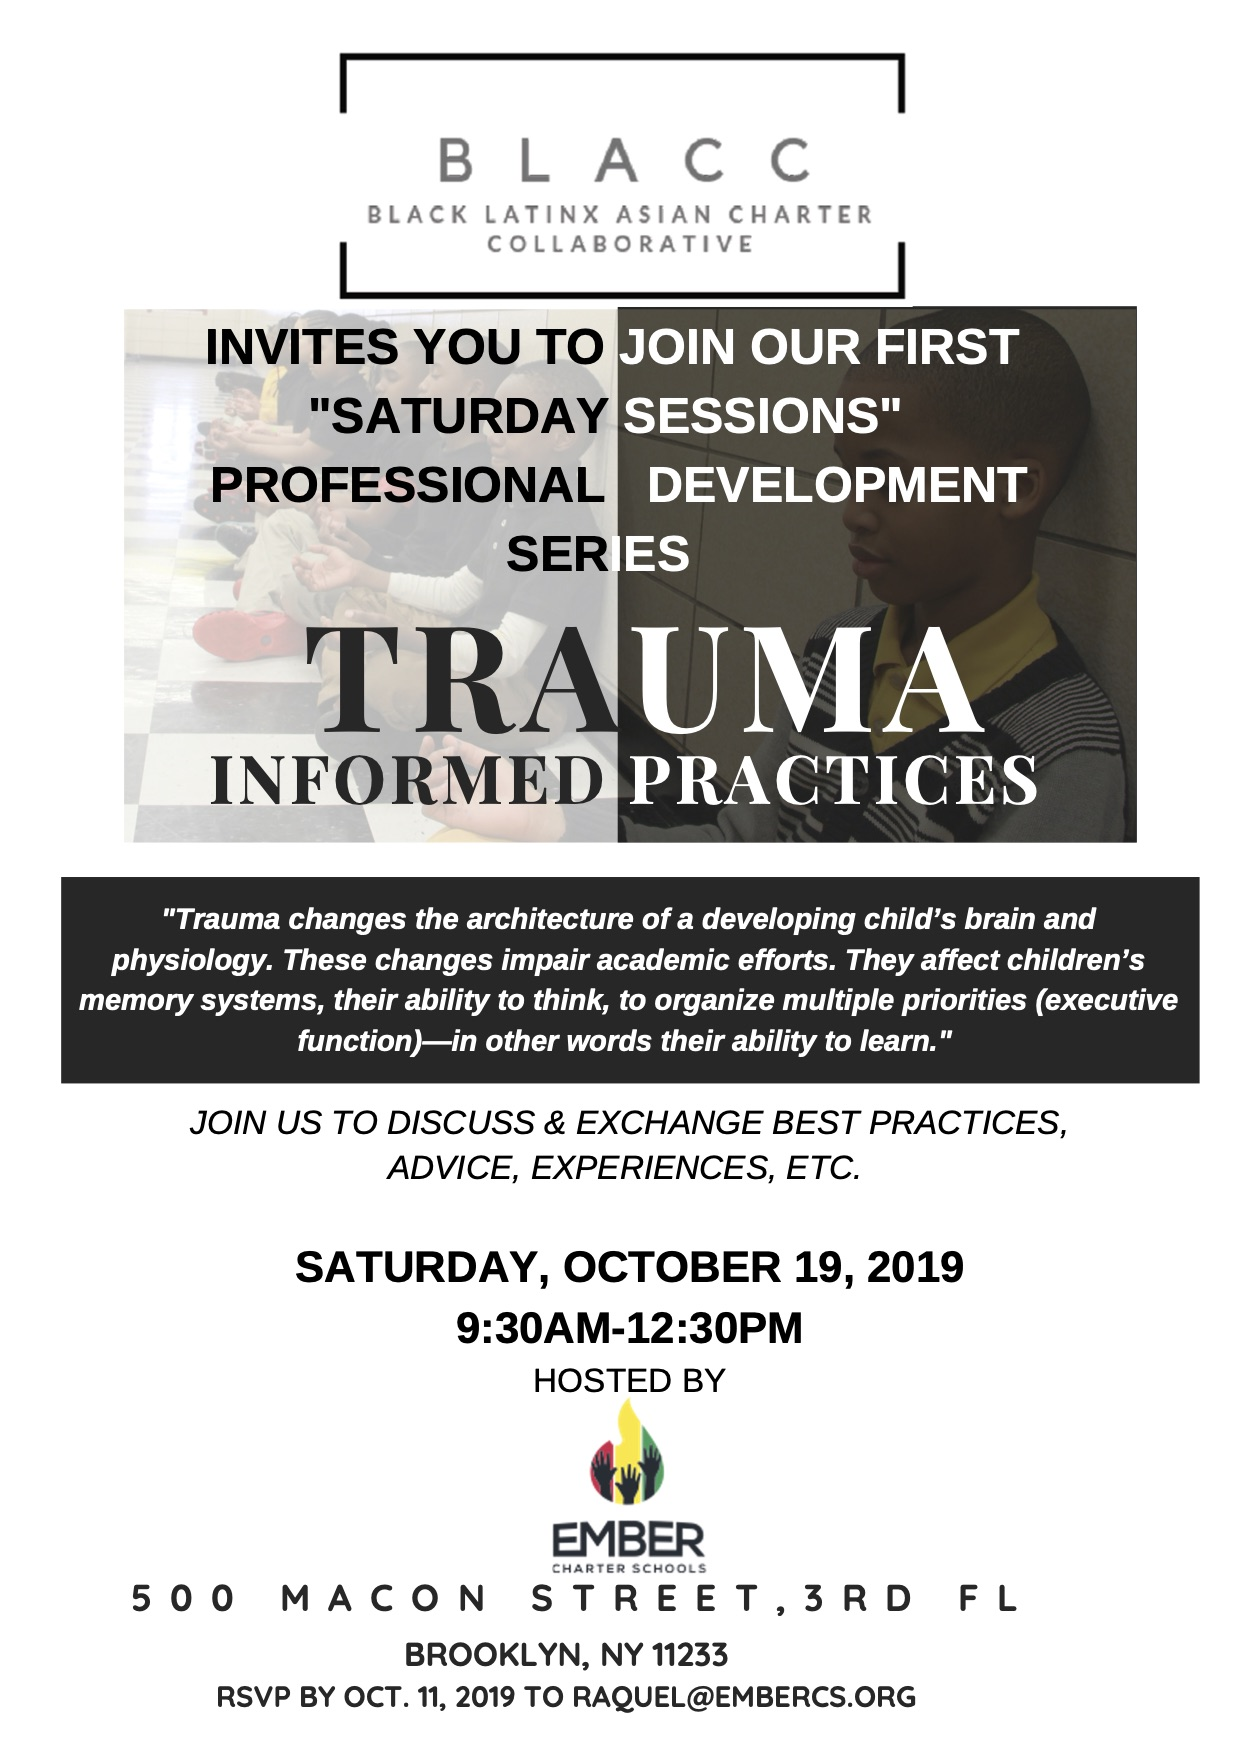 UPDATED BLACC Trauma Informed Practices PD Flyer